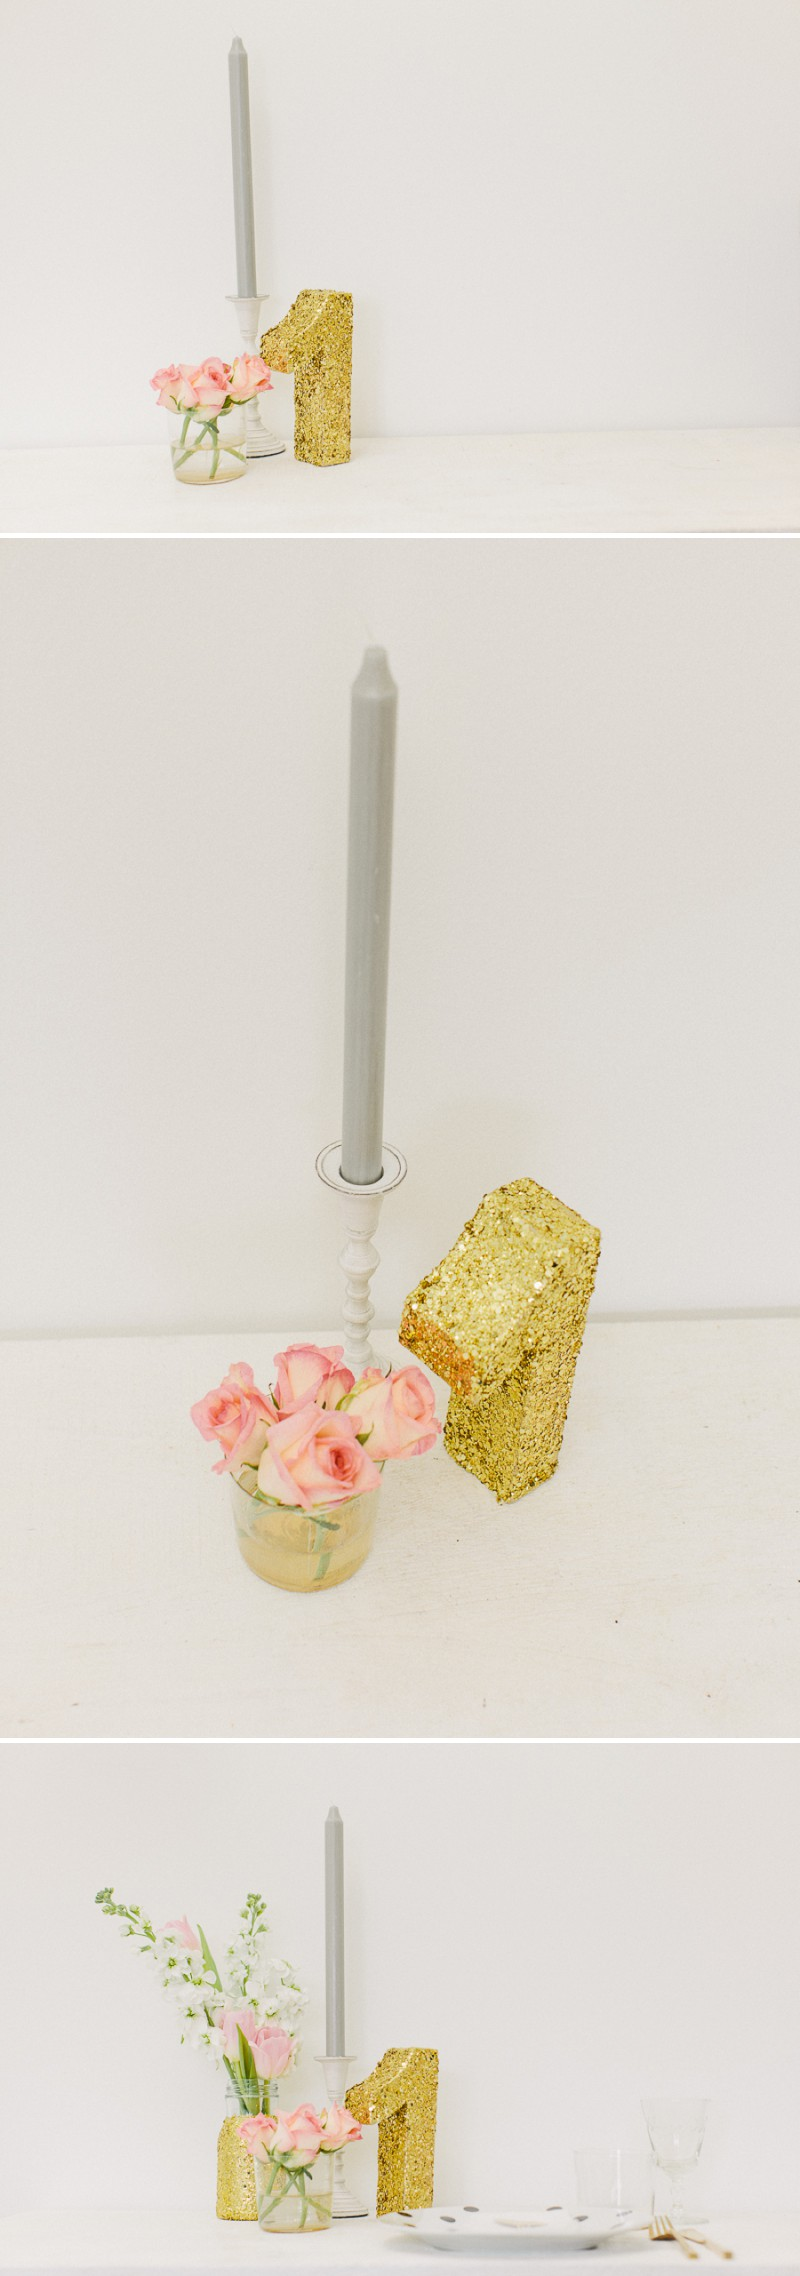 How to create a golden glittery table number for your wedding table settings and table plans._0006